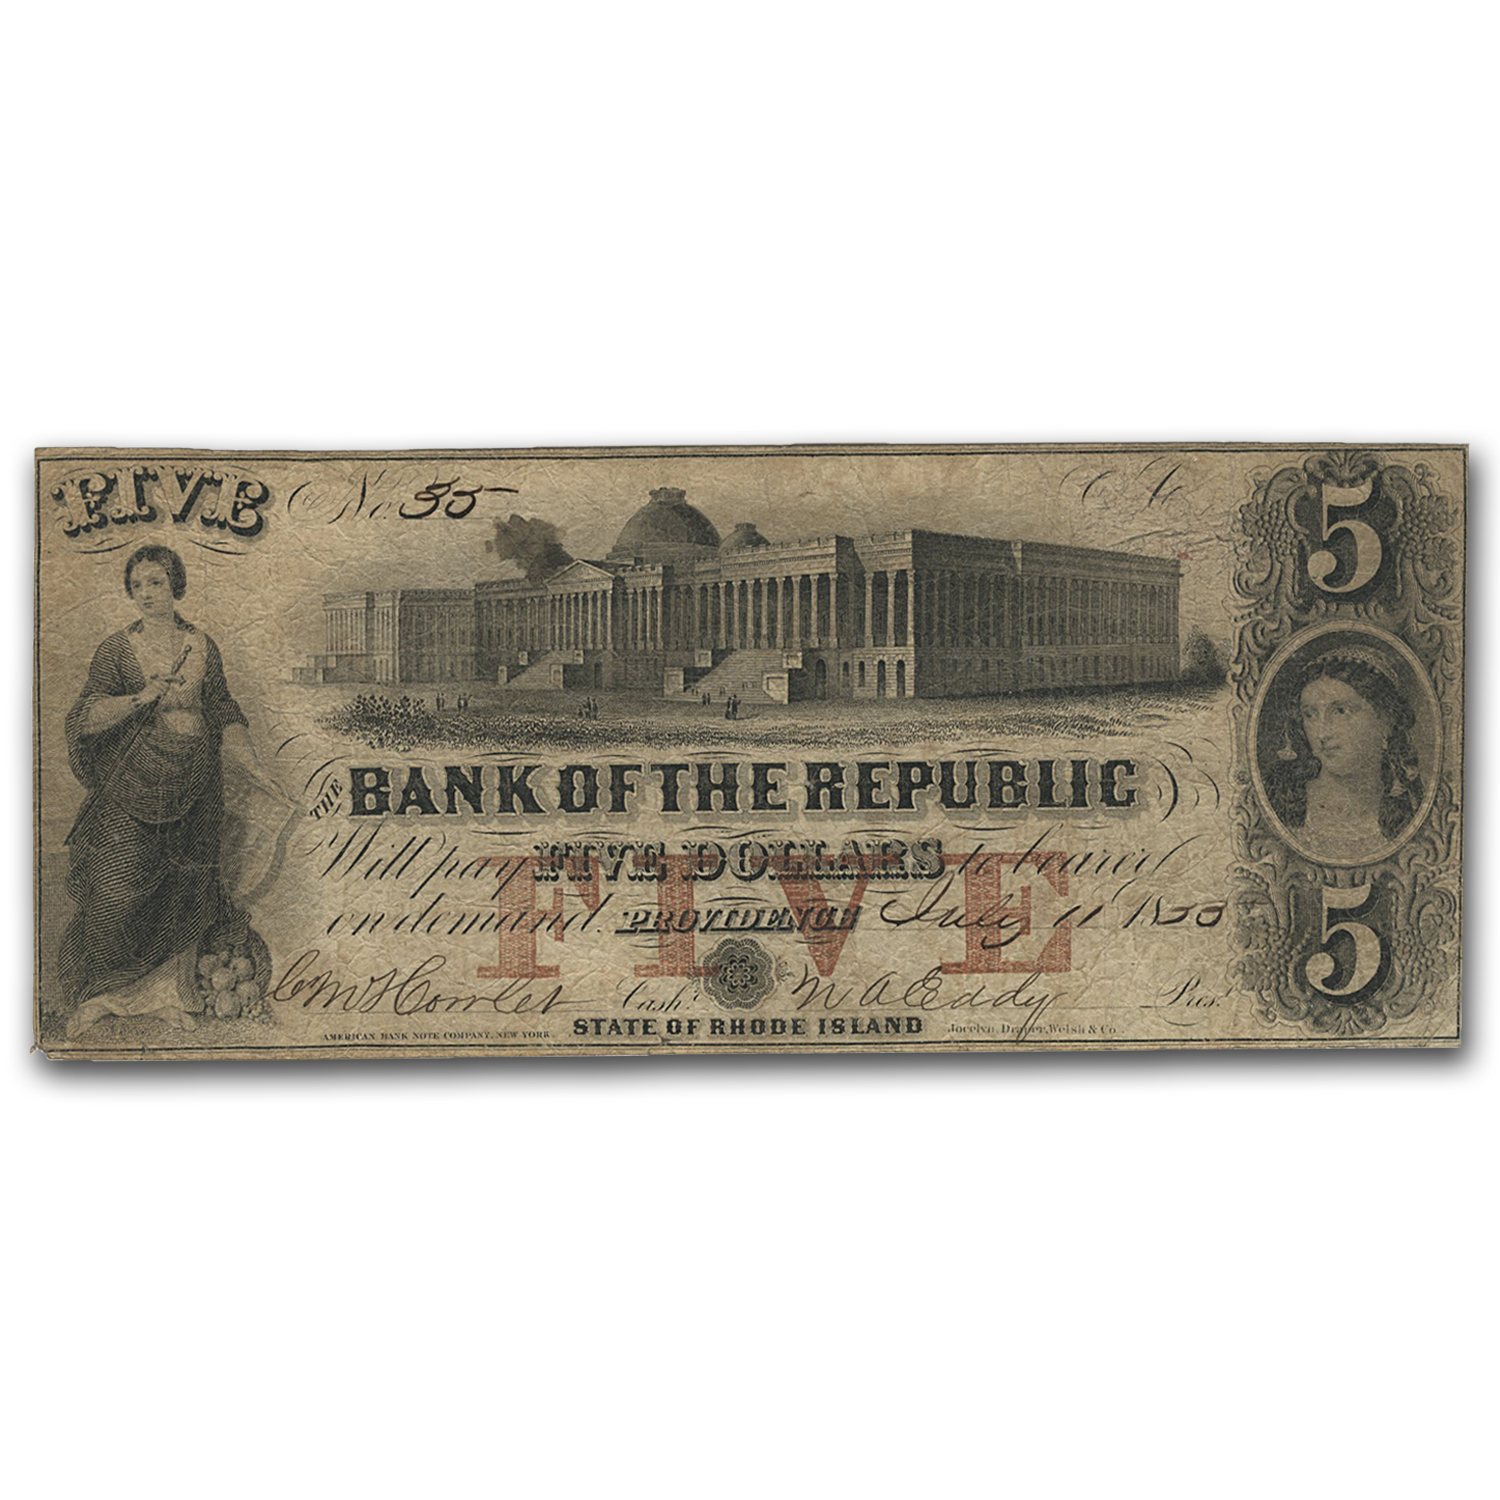 1856 Bank of the Republic, Providence, RI $5 RI-385 VF (G8a)